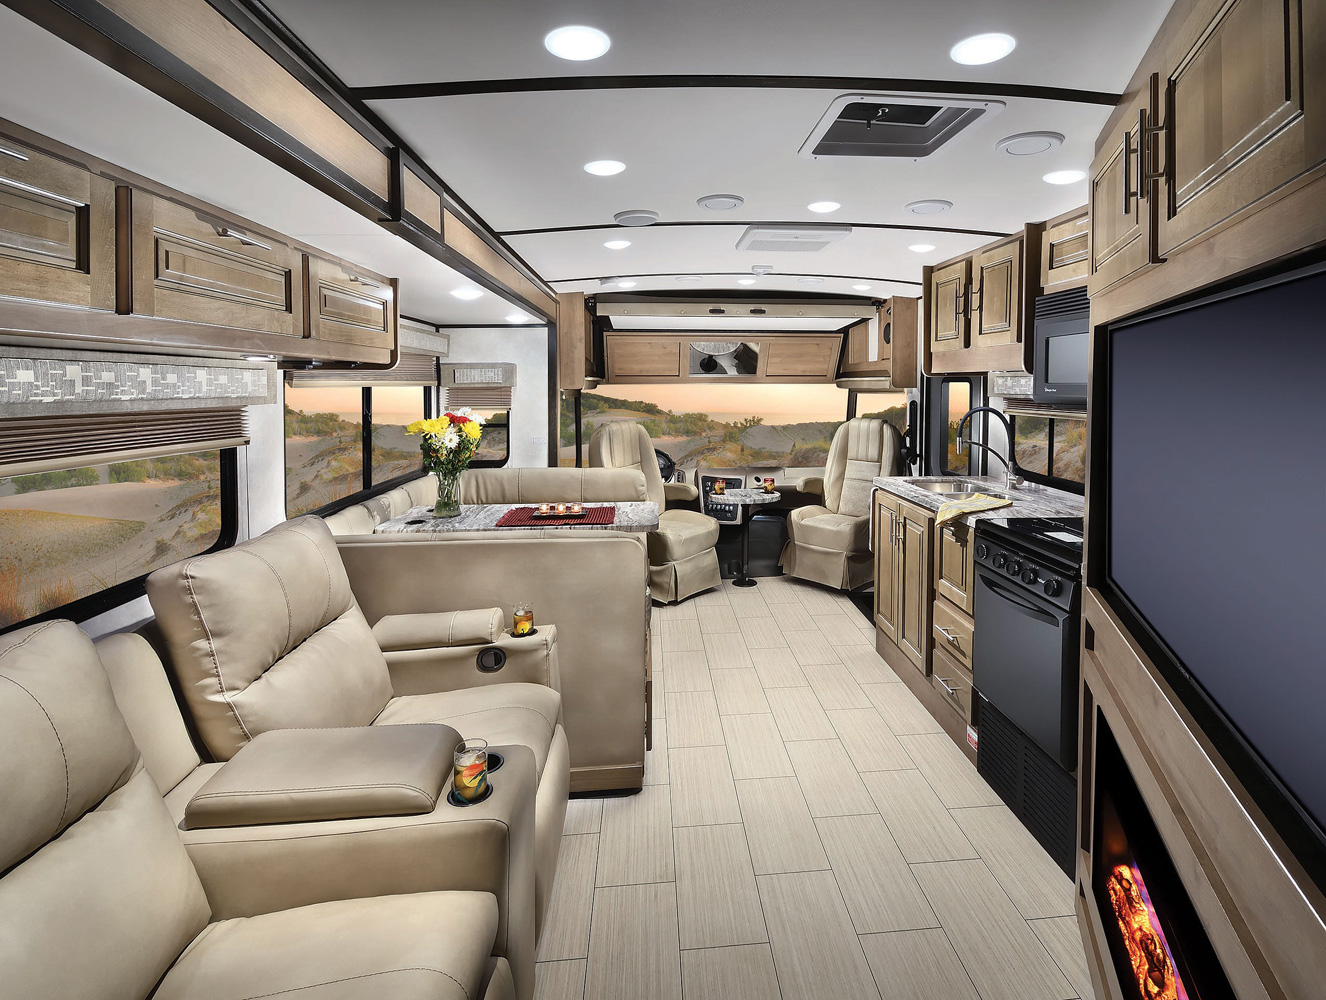 Fr3 Class A Motorhomes By Forest River Rv Vacuum Electrical Diagrams For Classa Withpushbutton Interior And Exterior